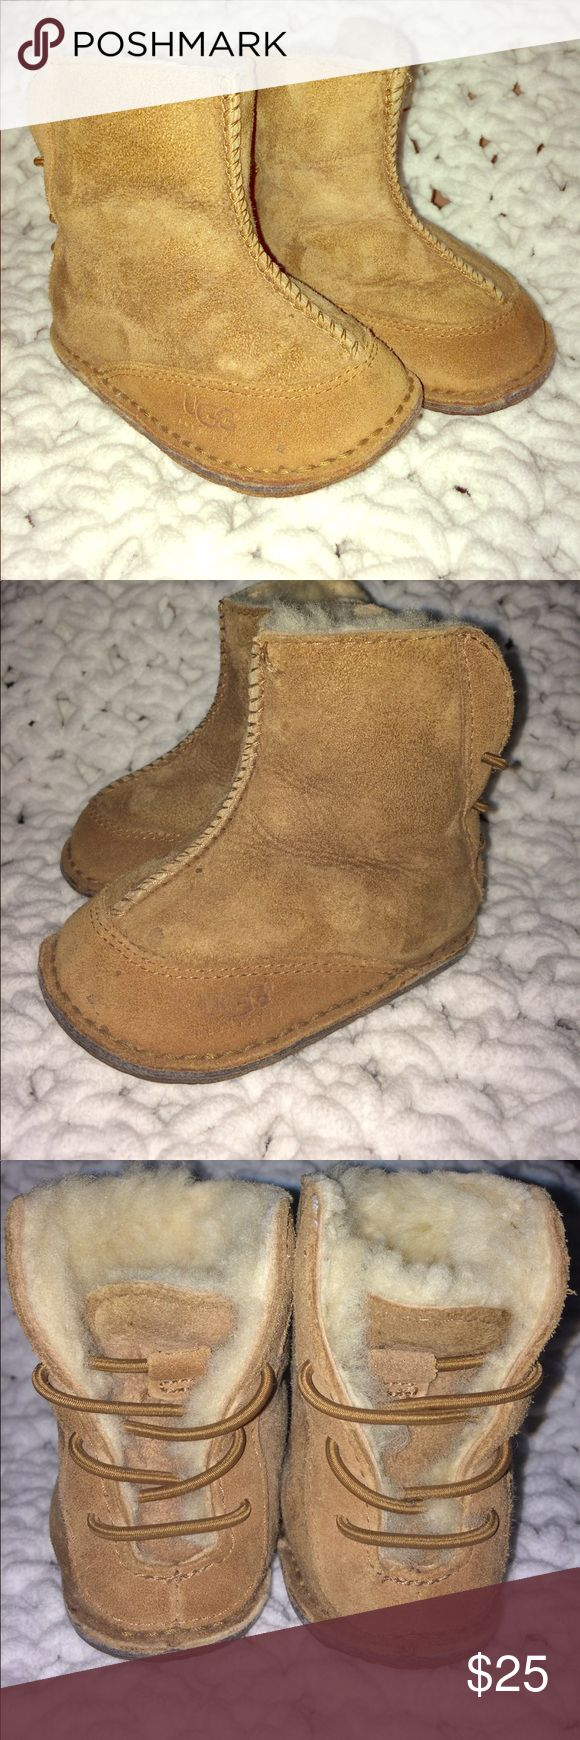 UGG Baby Booties Genuine Sheepskin Camel Color Barely used baby booties UGG. My son grew out of them before I could even put them on for the second time. So my loss is your gain. The retail price is around $69 UGG Shoes Baby & Walker